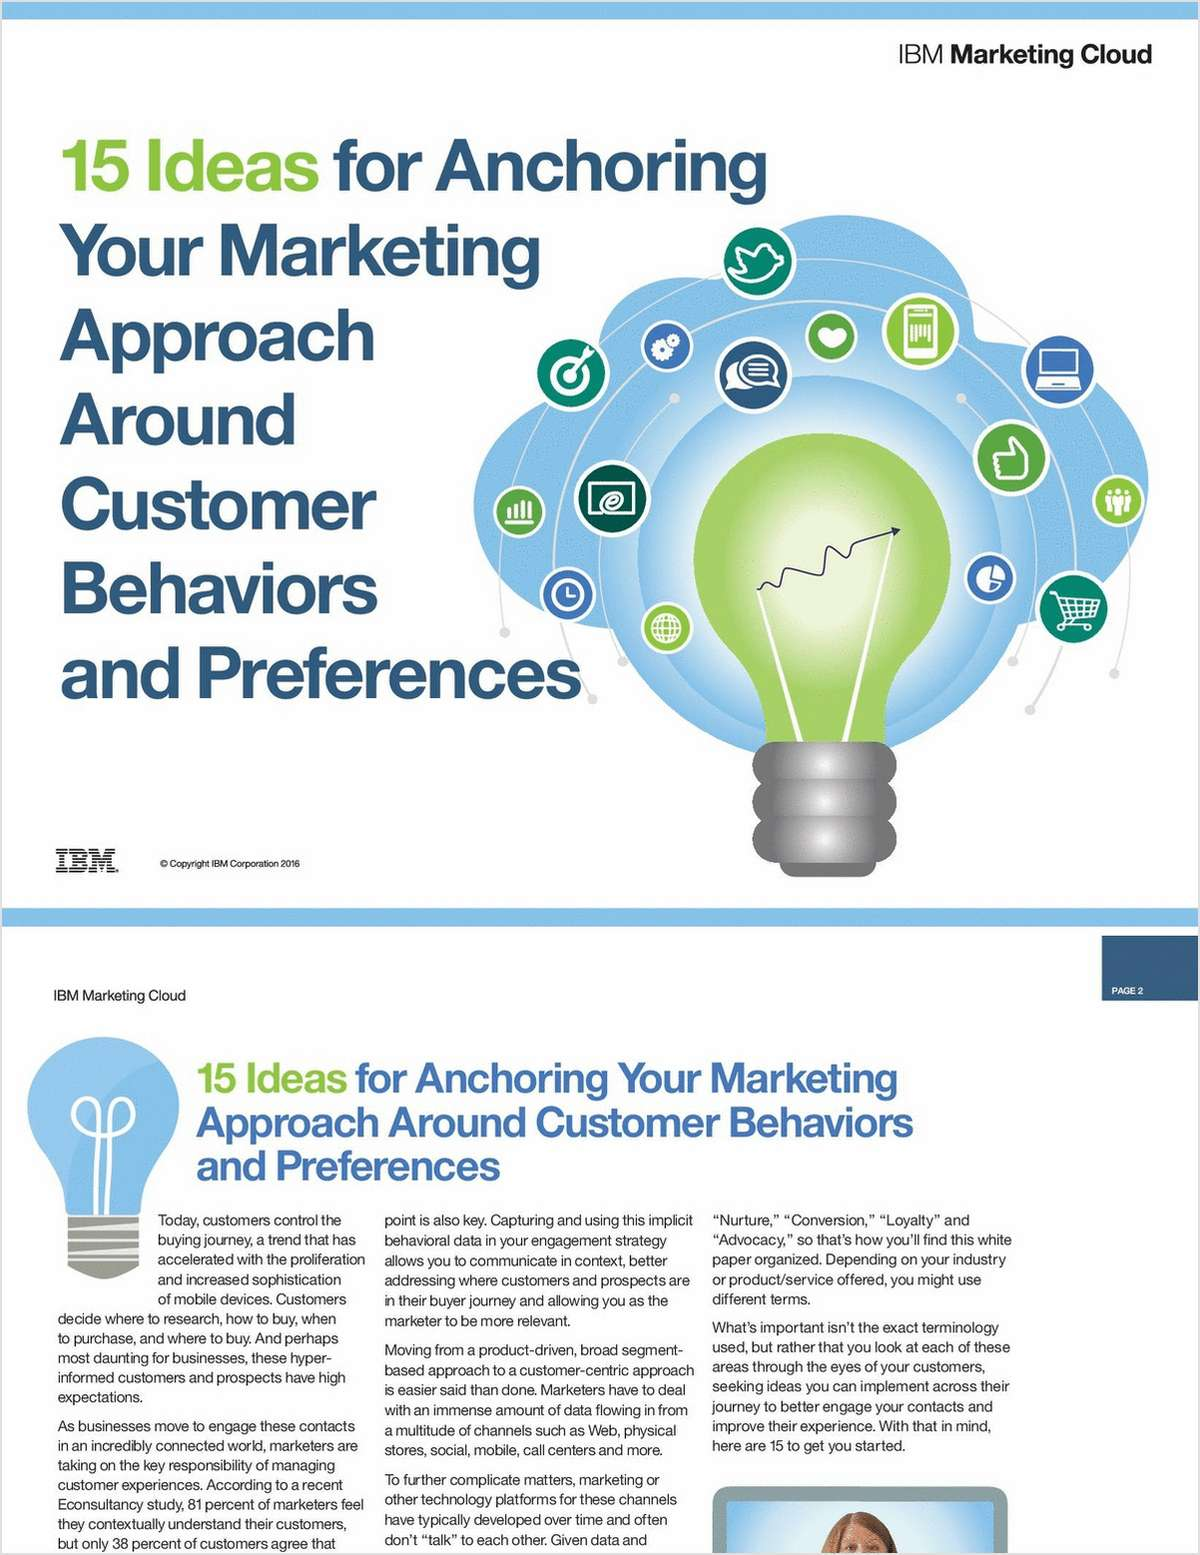 15 Ideas for Anchoring Your Marketing Approach Around Customer Behaviors and Preferences